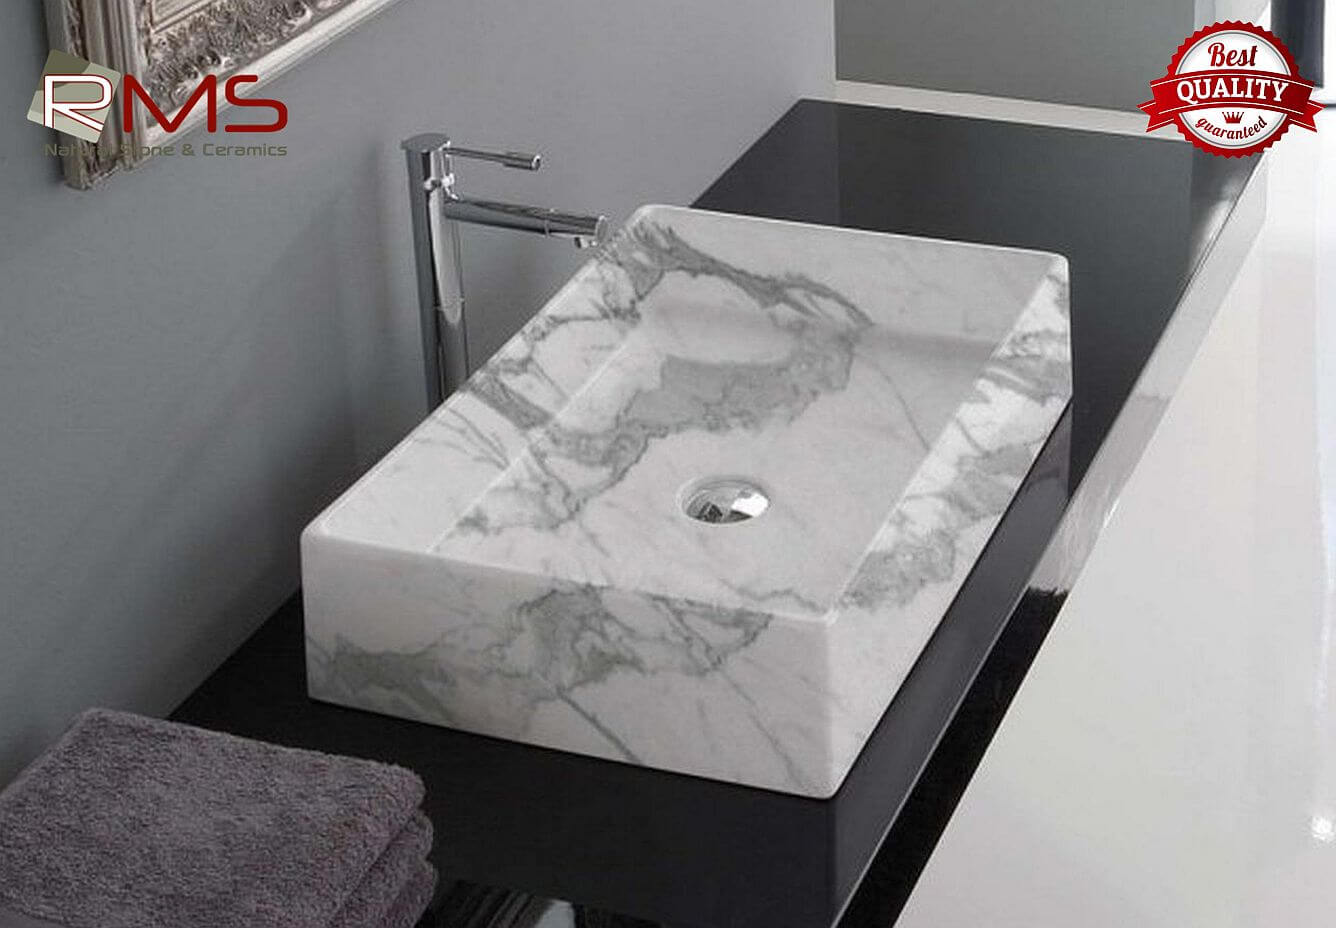 Marble Basin Marble Basins Best Quality High End Marble Products And Designs